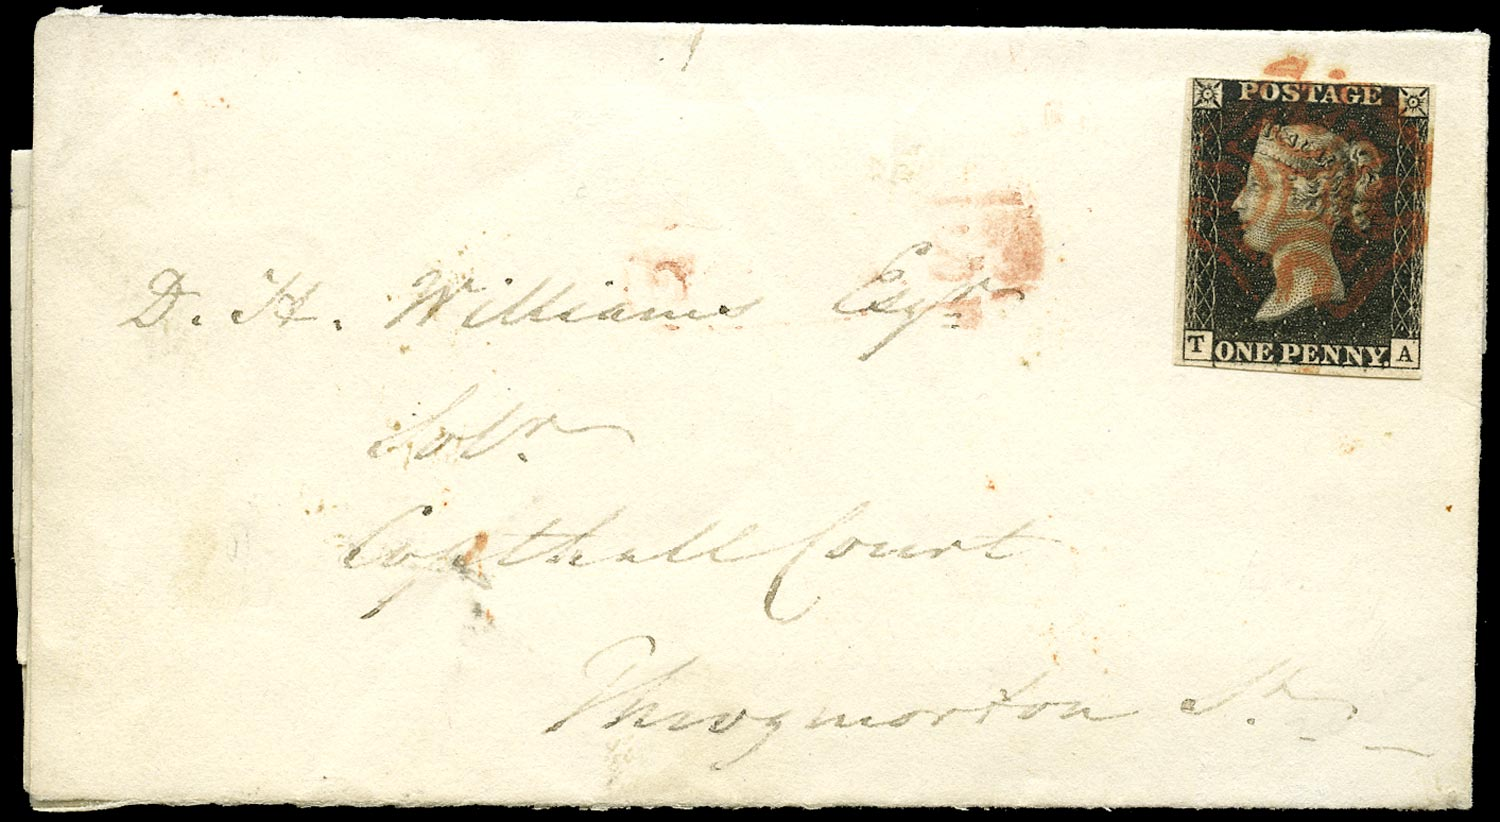 GB 1840  SG1 Pl.8 Cover - sent locally within London, showing Re-entry